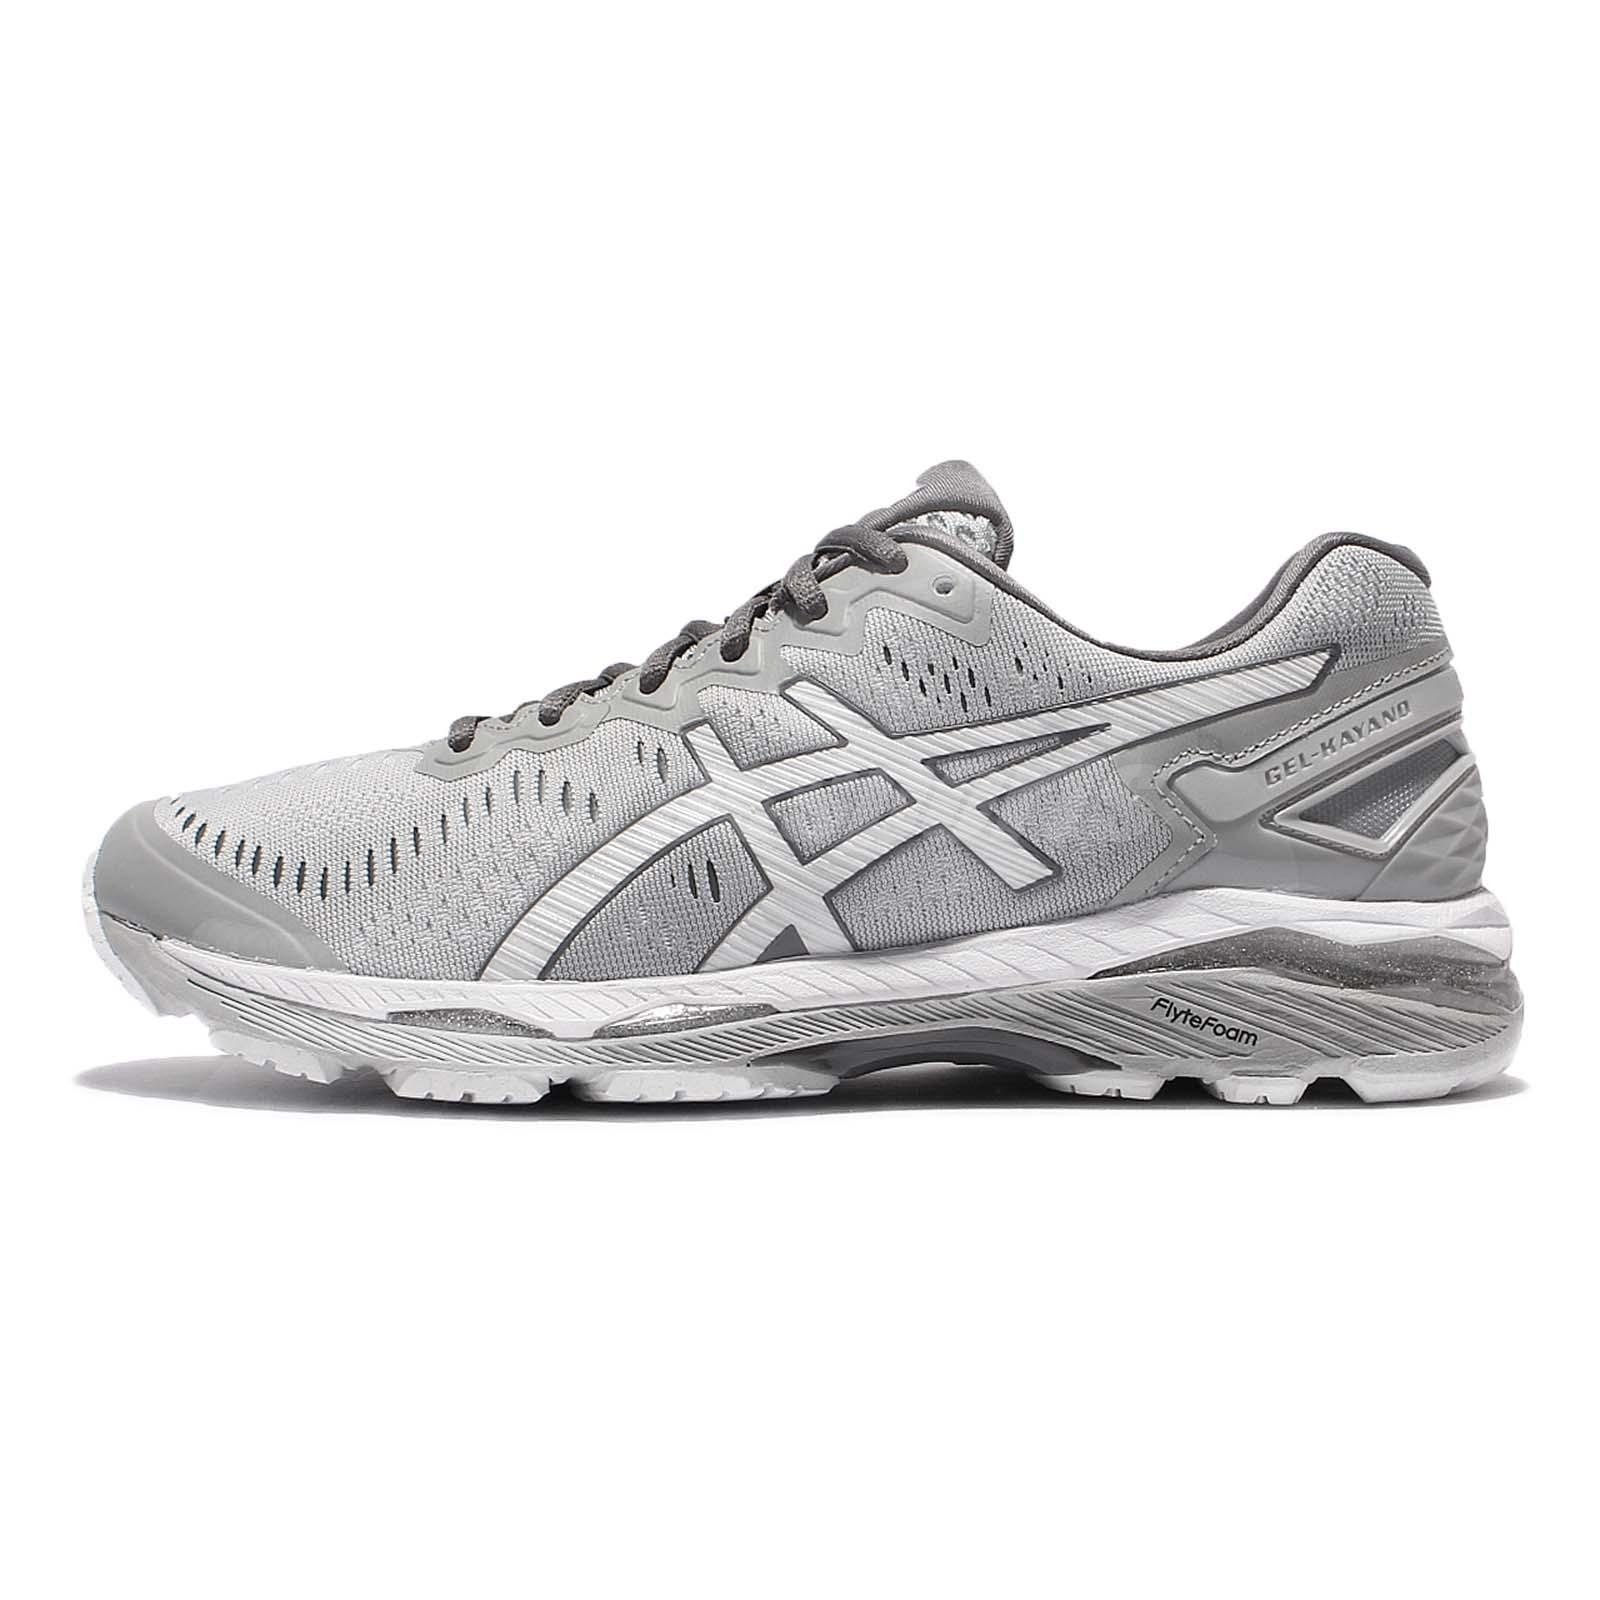 Asics Gel-Kayano 23 Grey White Men Running Shoes Sneakers Trainers  T646N-9601